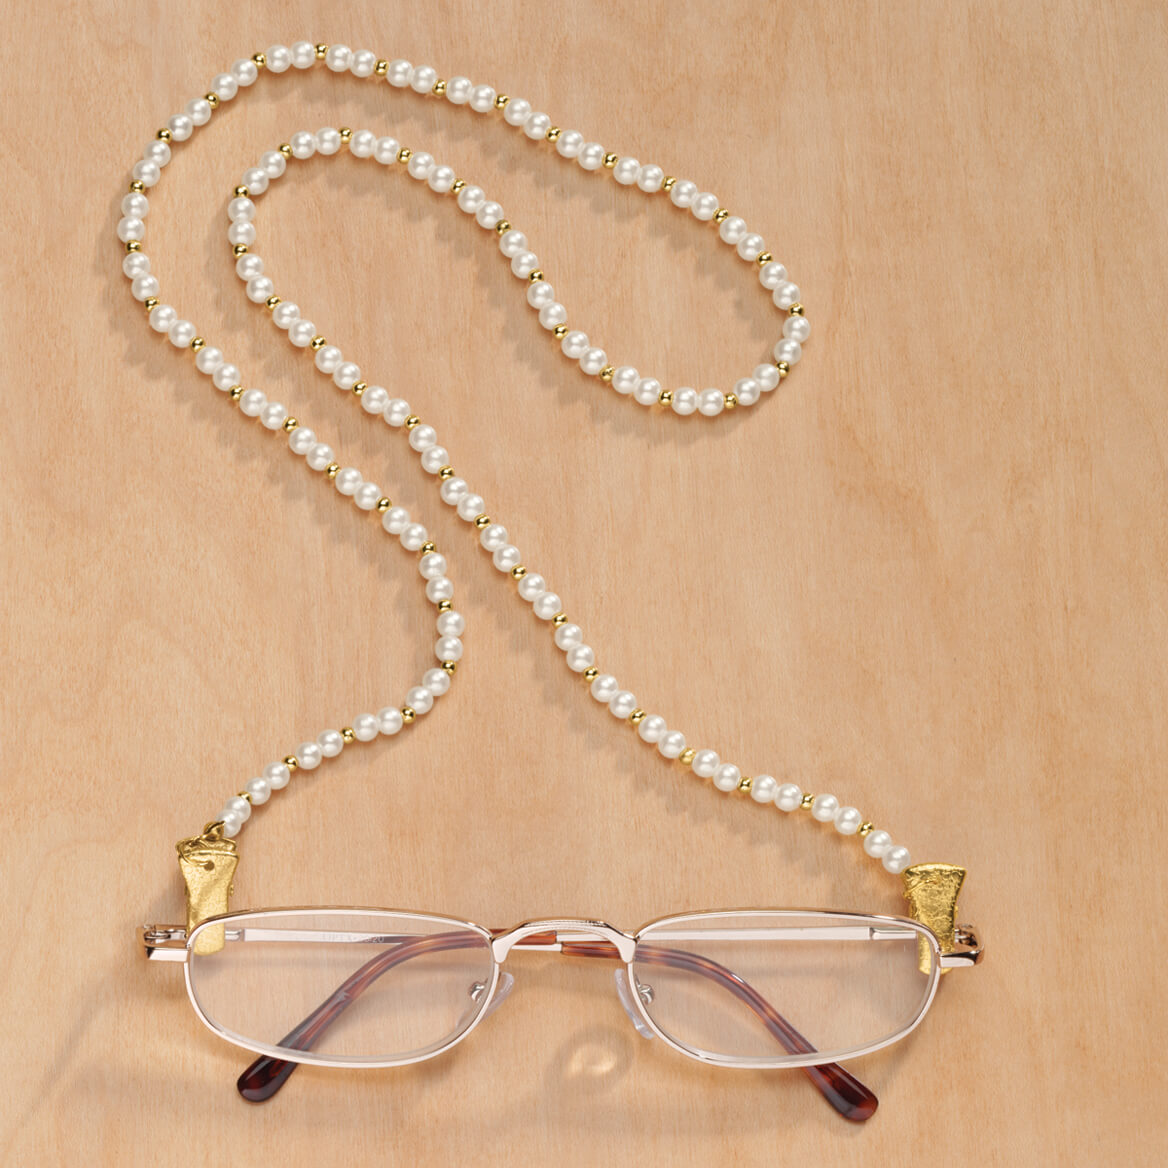 Eyeglass Chain-337766